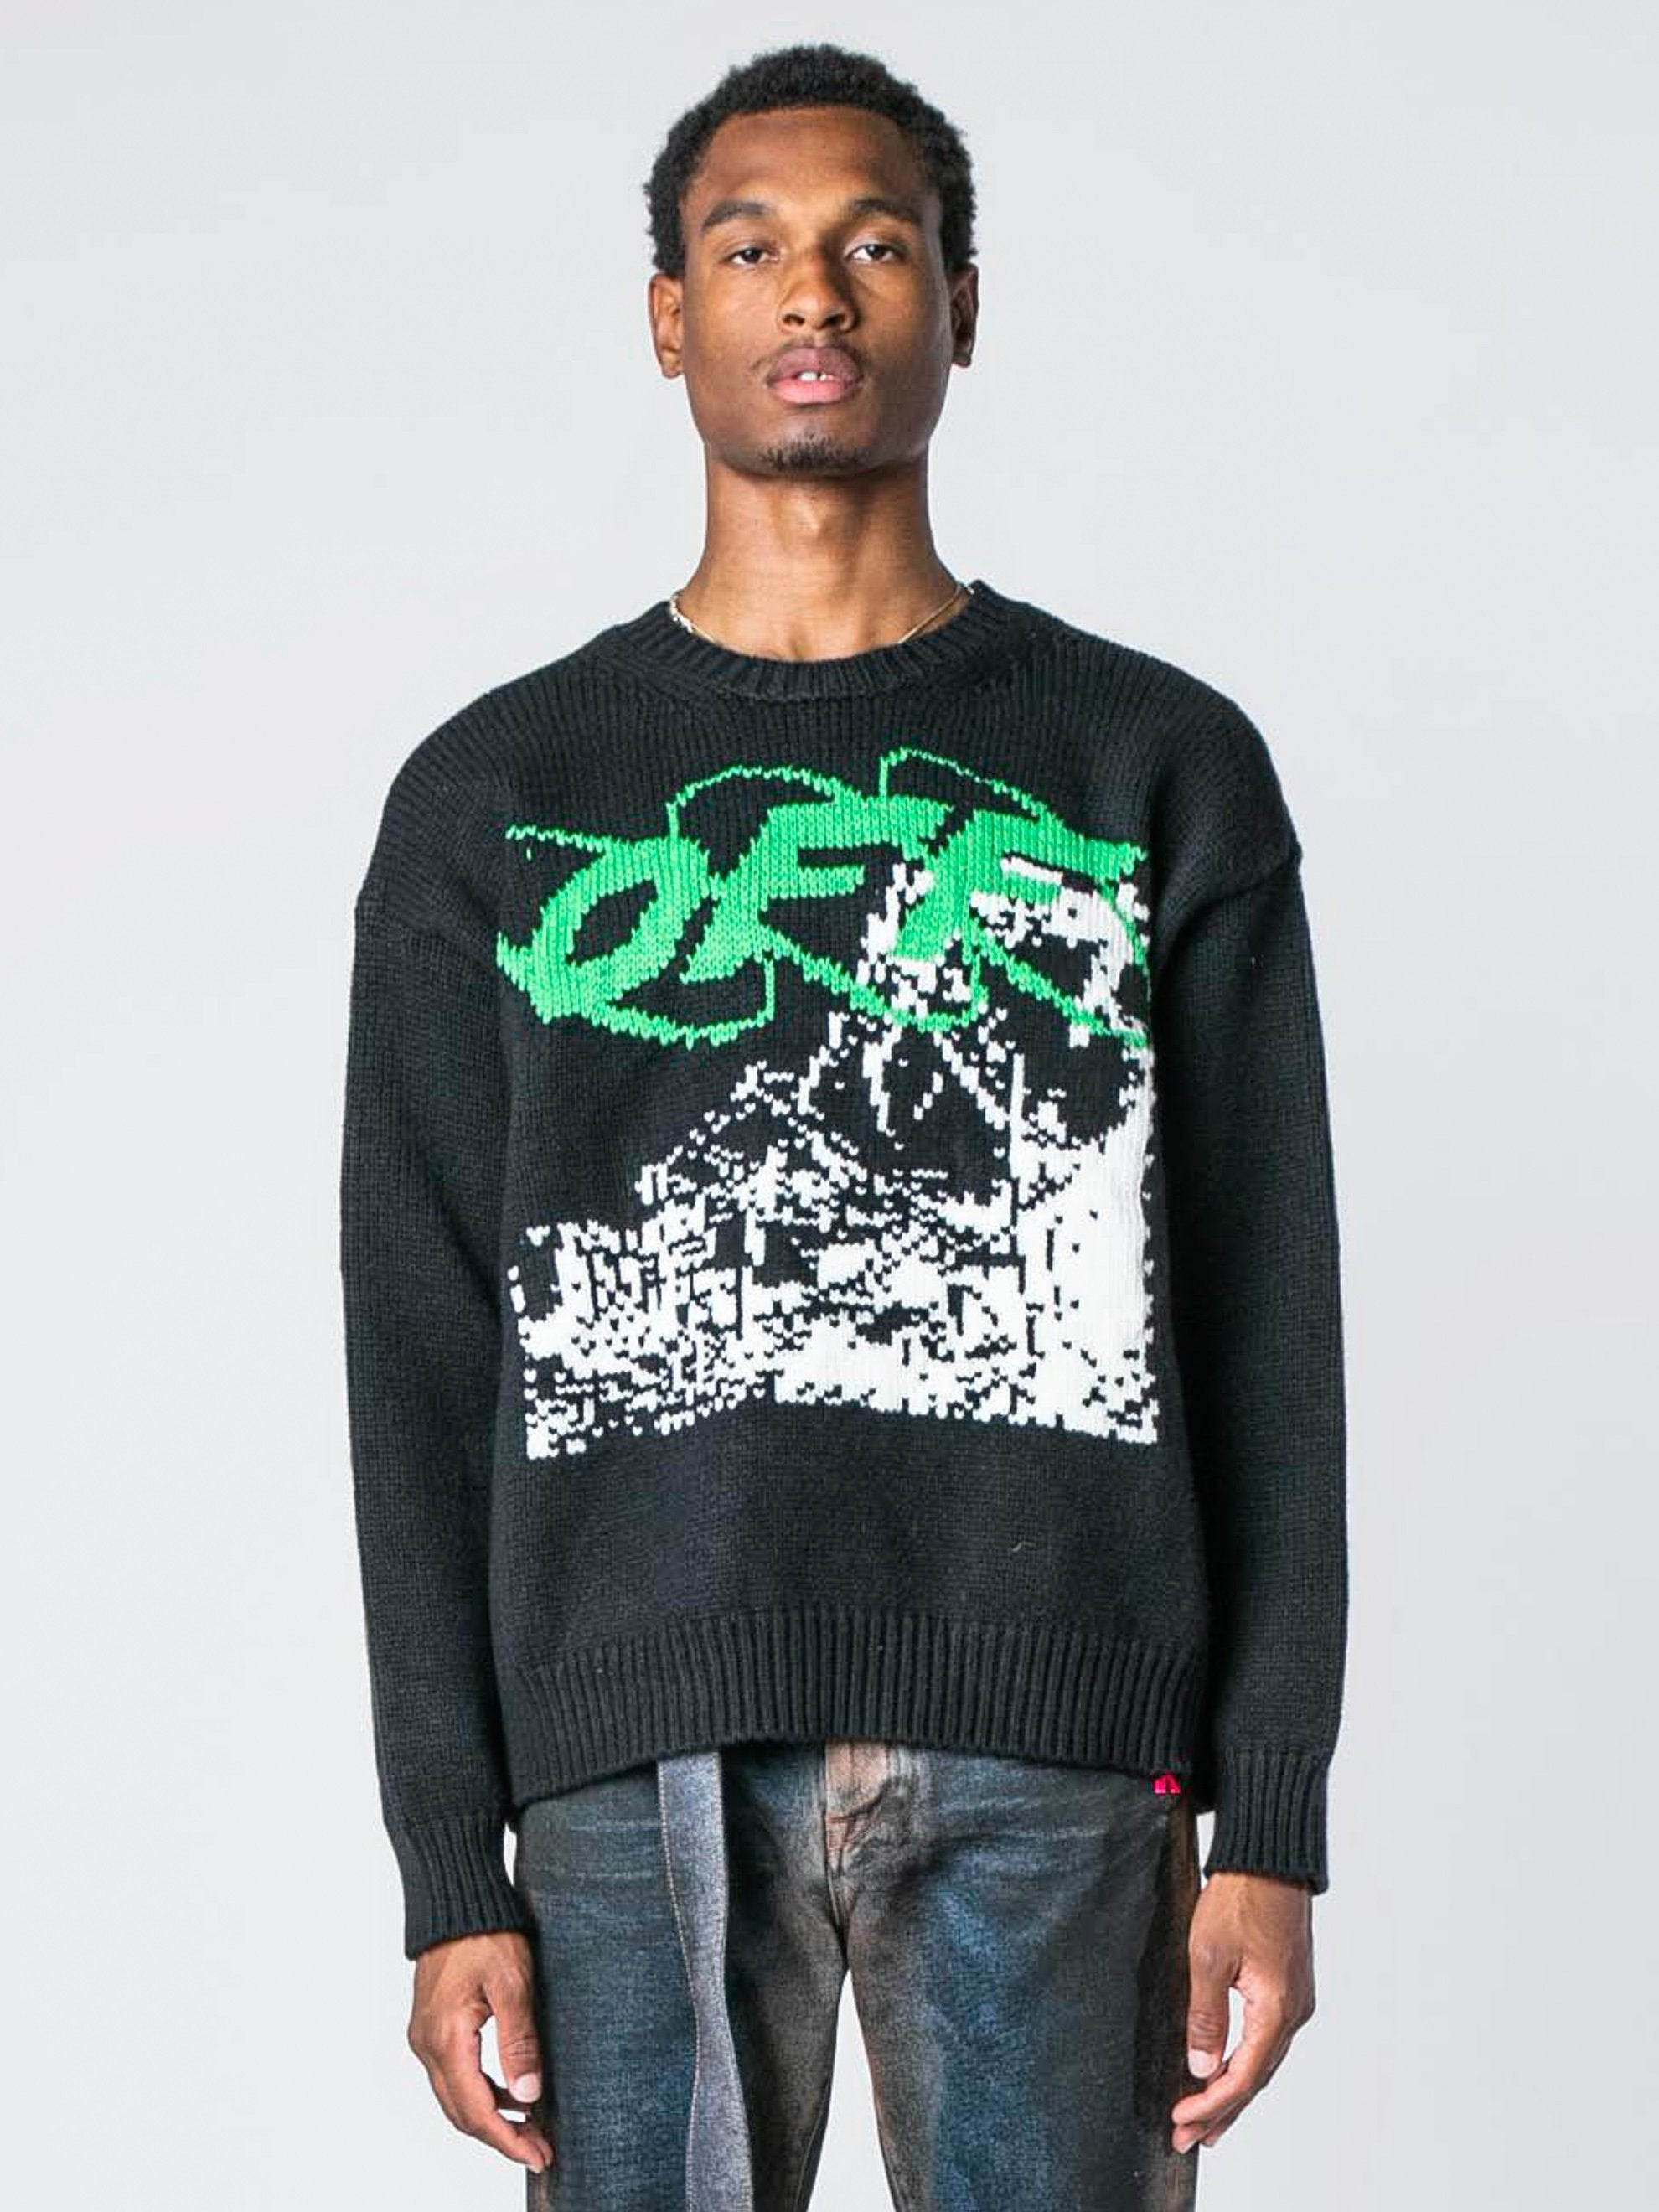 Black / White Ruined Factory Knit Crewneck 2